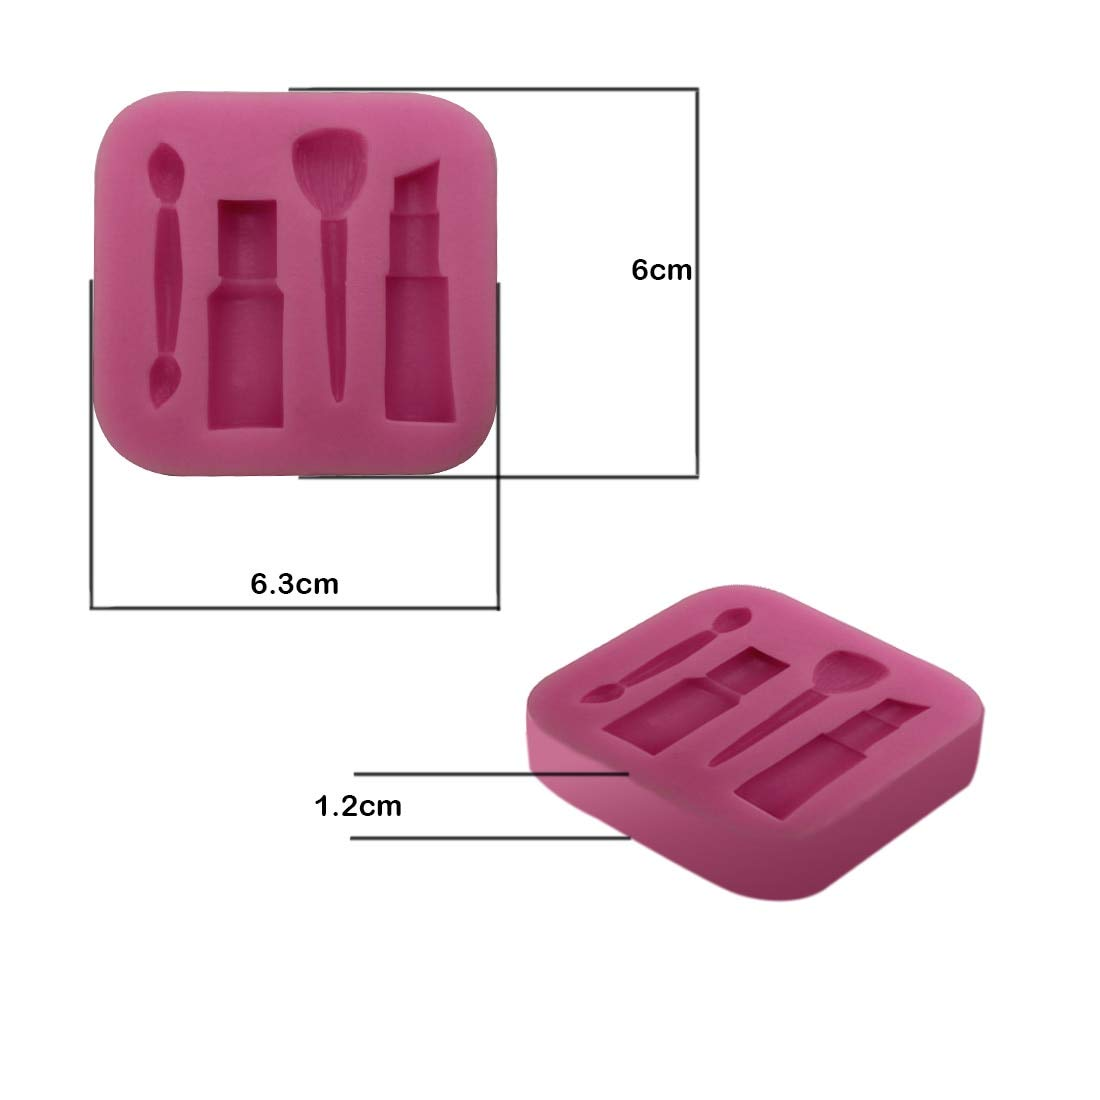 1 piece Creative Silicone Grape Strawberry Lipstick DIY Soap Fondant Sugarcraft Mold Mould Candy Chocolate Cake Decorating Tools Random